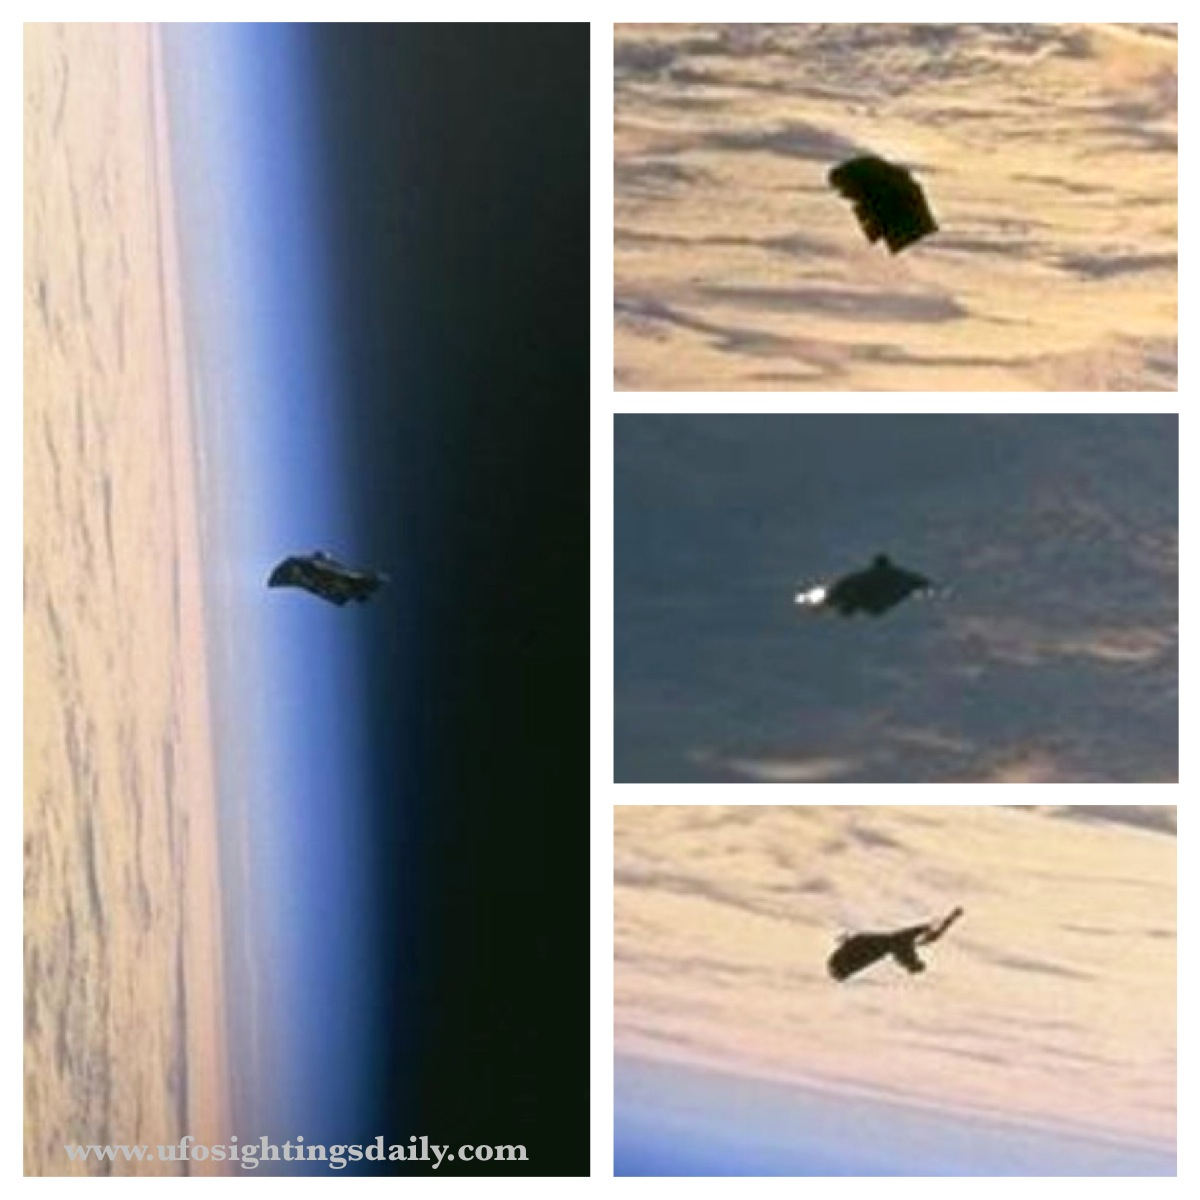 UFO SIGHTINGS DAILY: UFO Sighting Photos leaked out of ...